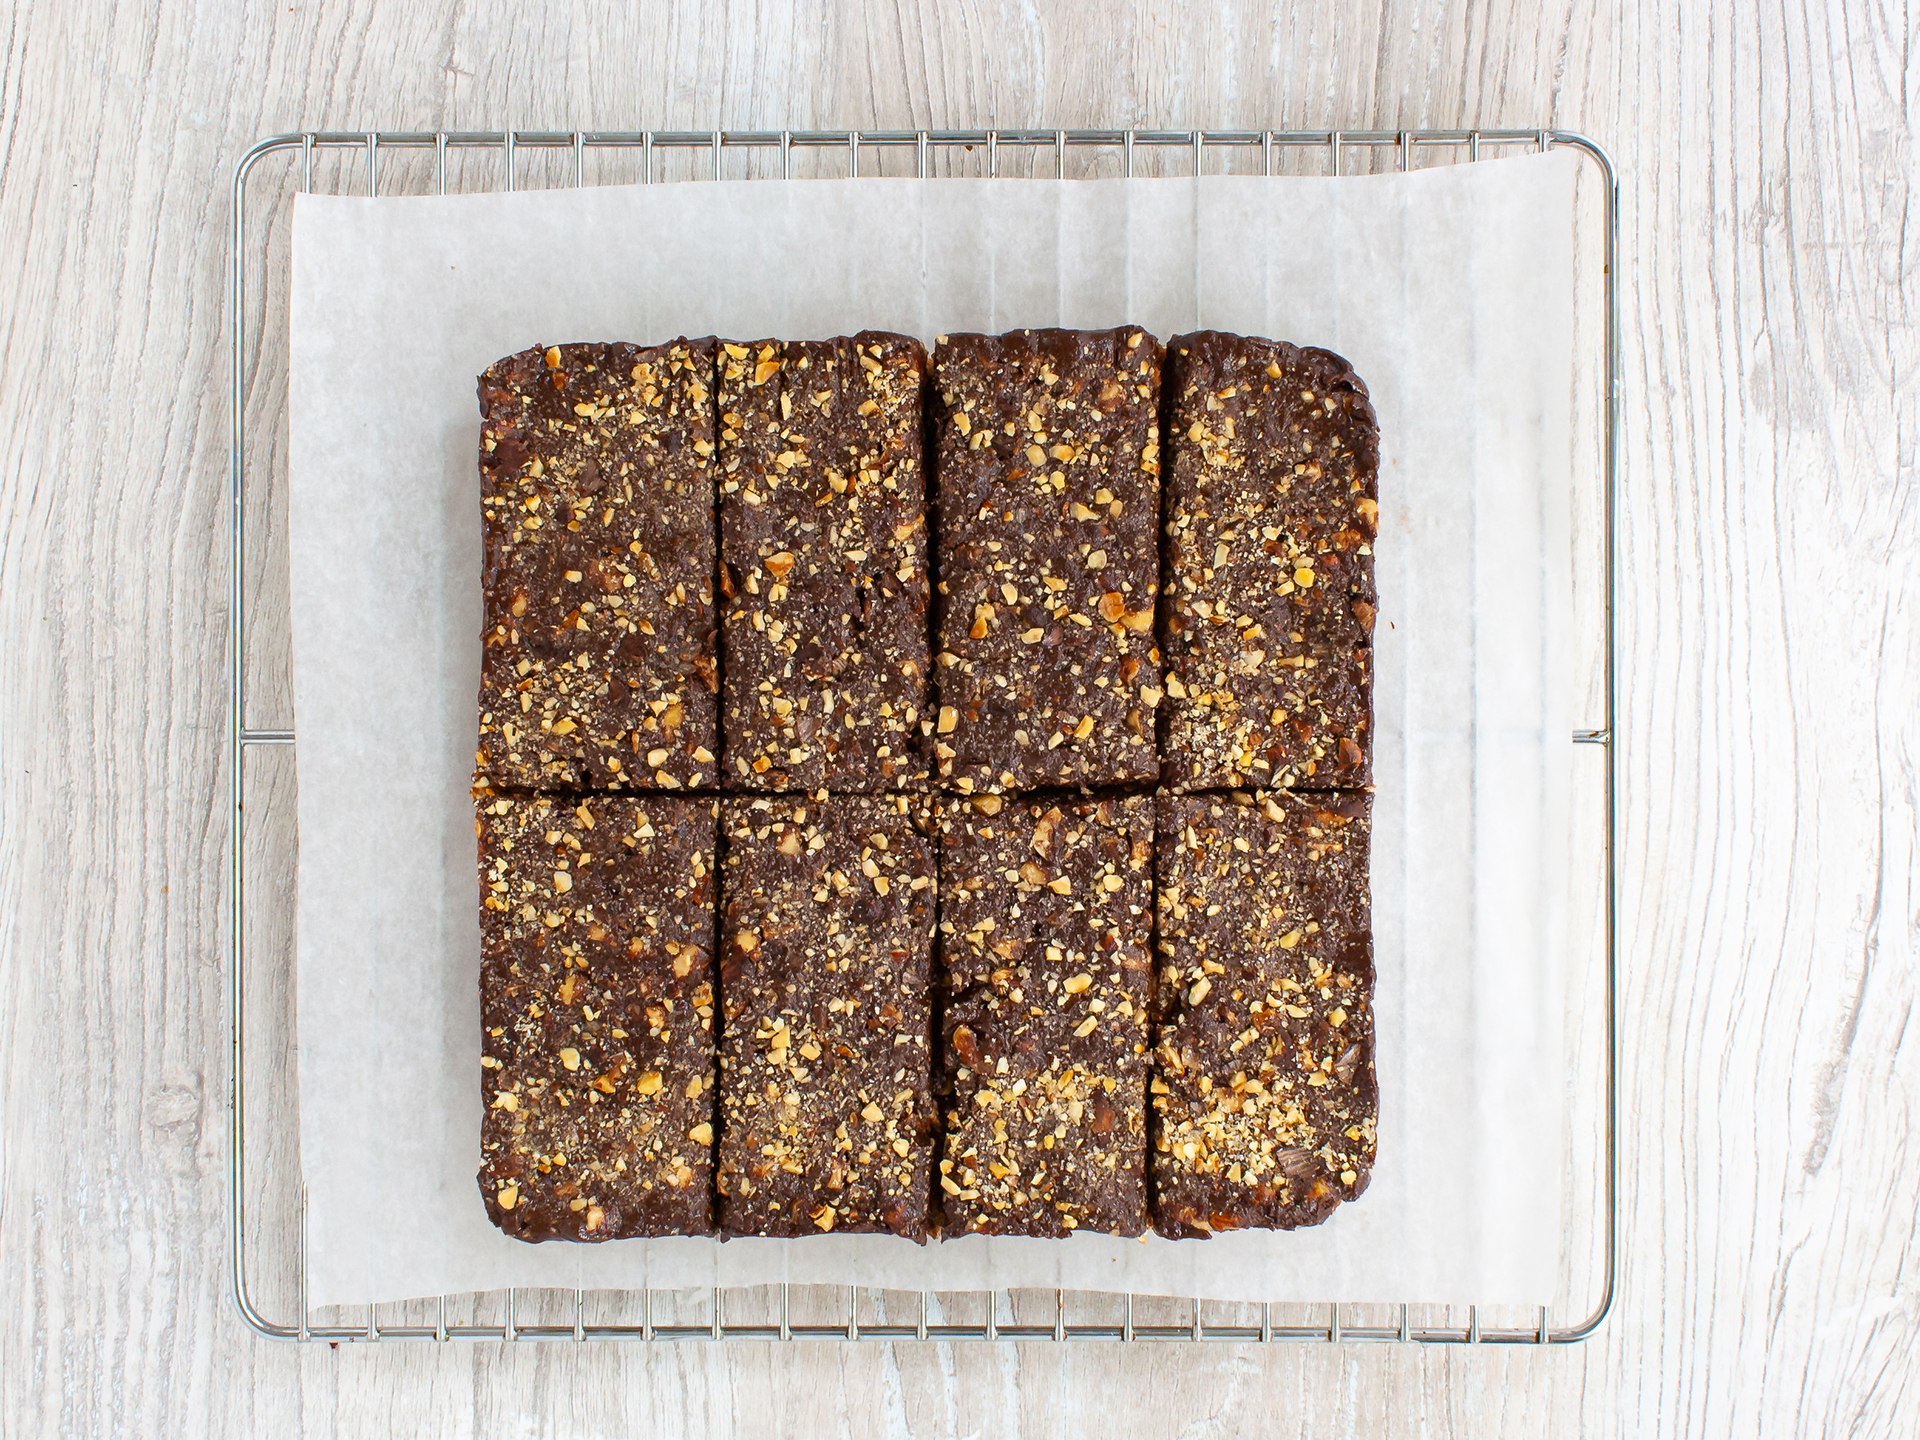 Step 5.2 of Vegan High Protein High Fiber Date Energy Bars